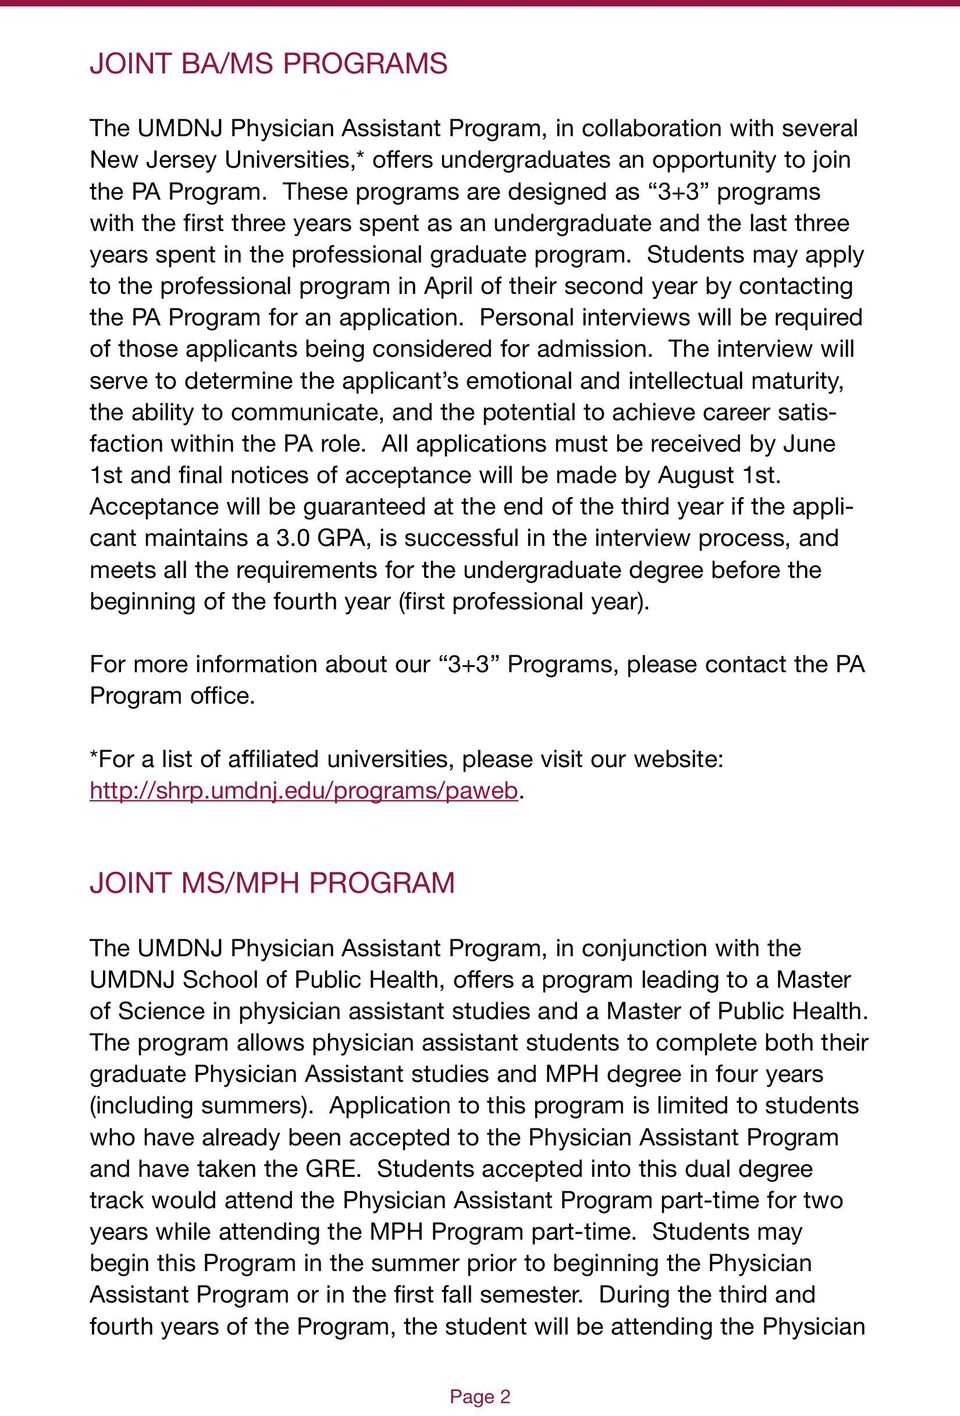 Students may apply to the professional program in April of their second year by contacting the PA Program for an application.